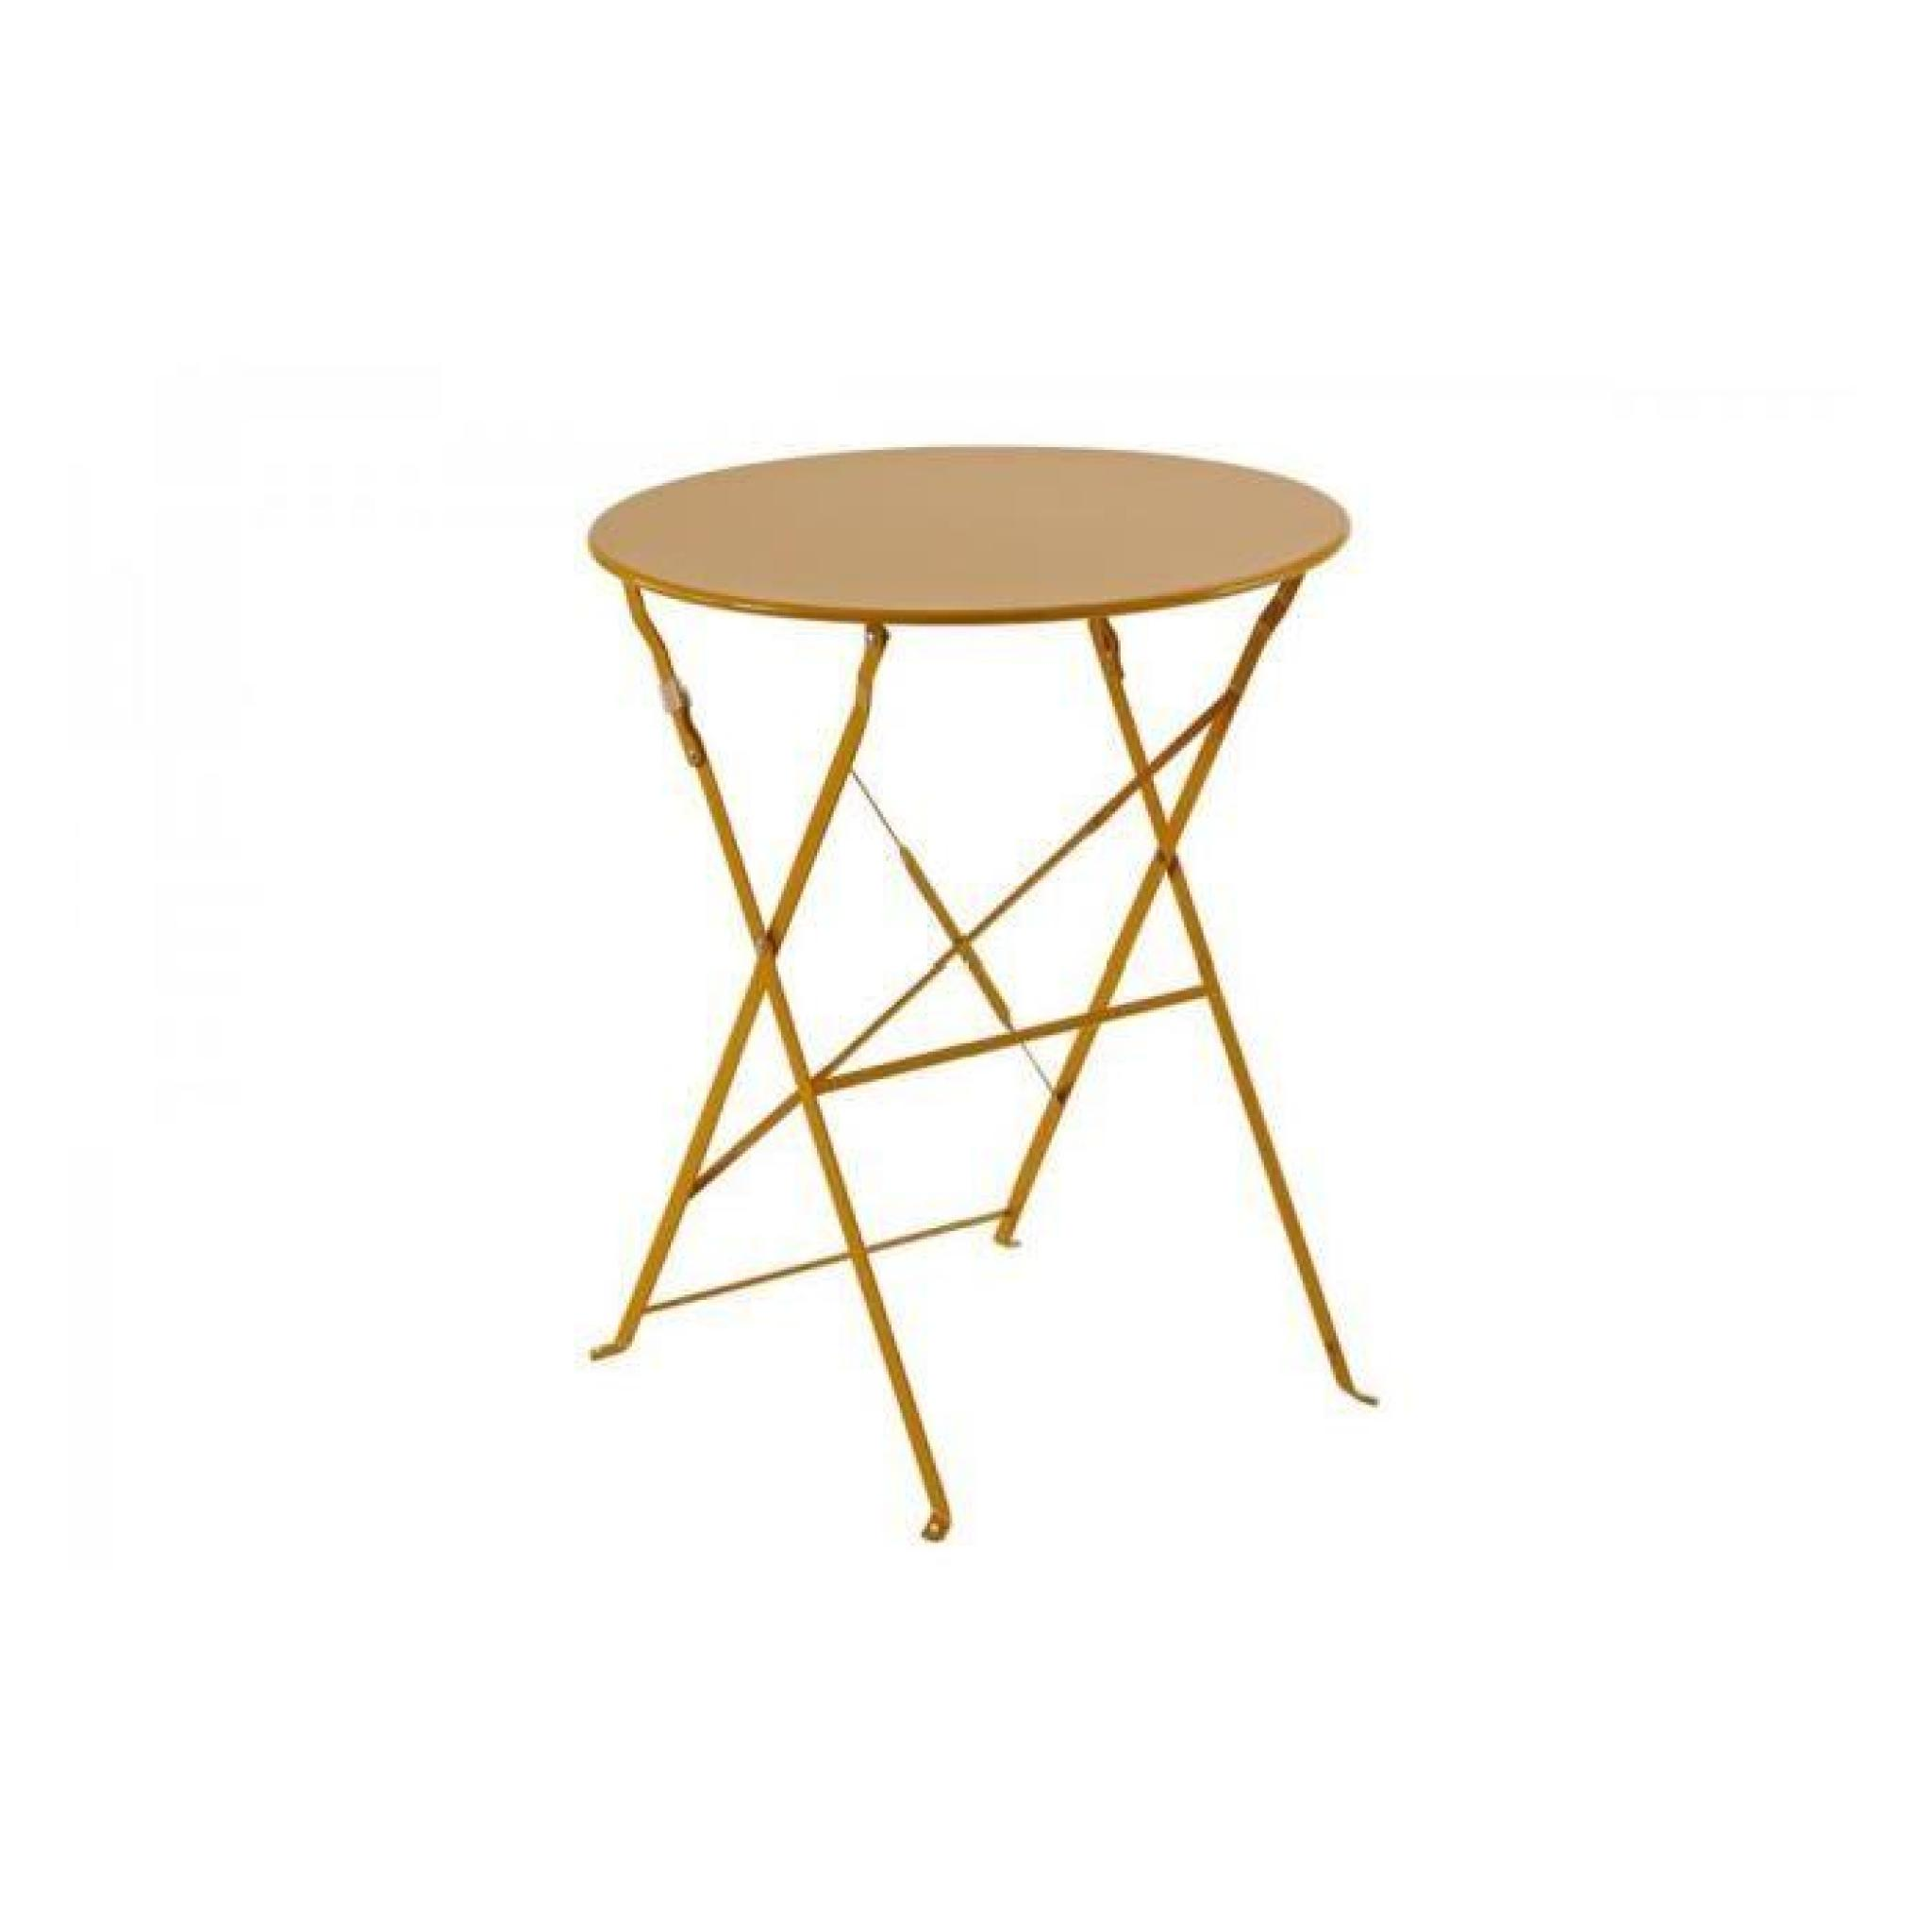 TABLE RONDE 60CM PLIANTE CAMARGUE HESPERIDE ORANGE - Achat/Vente ...